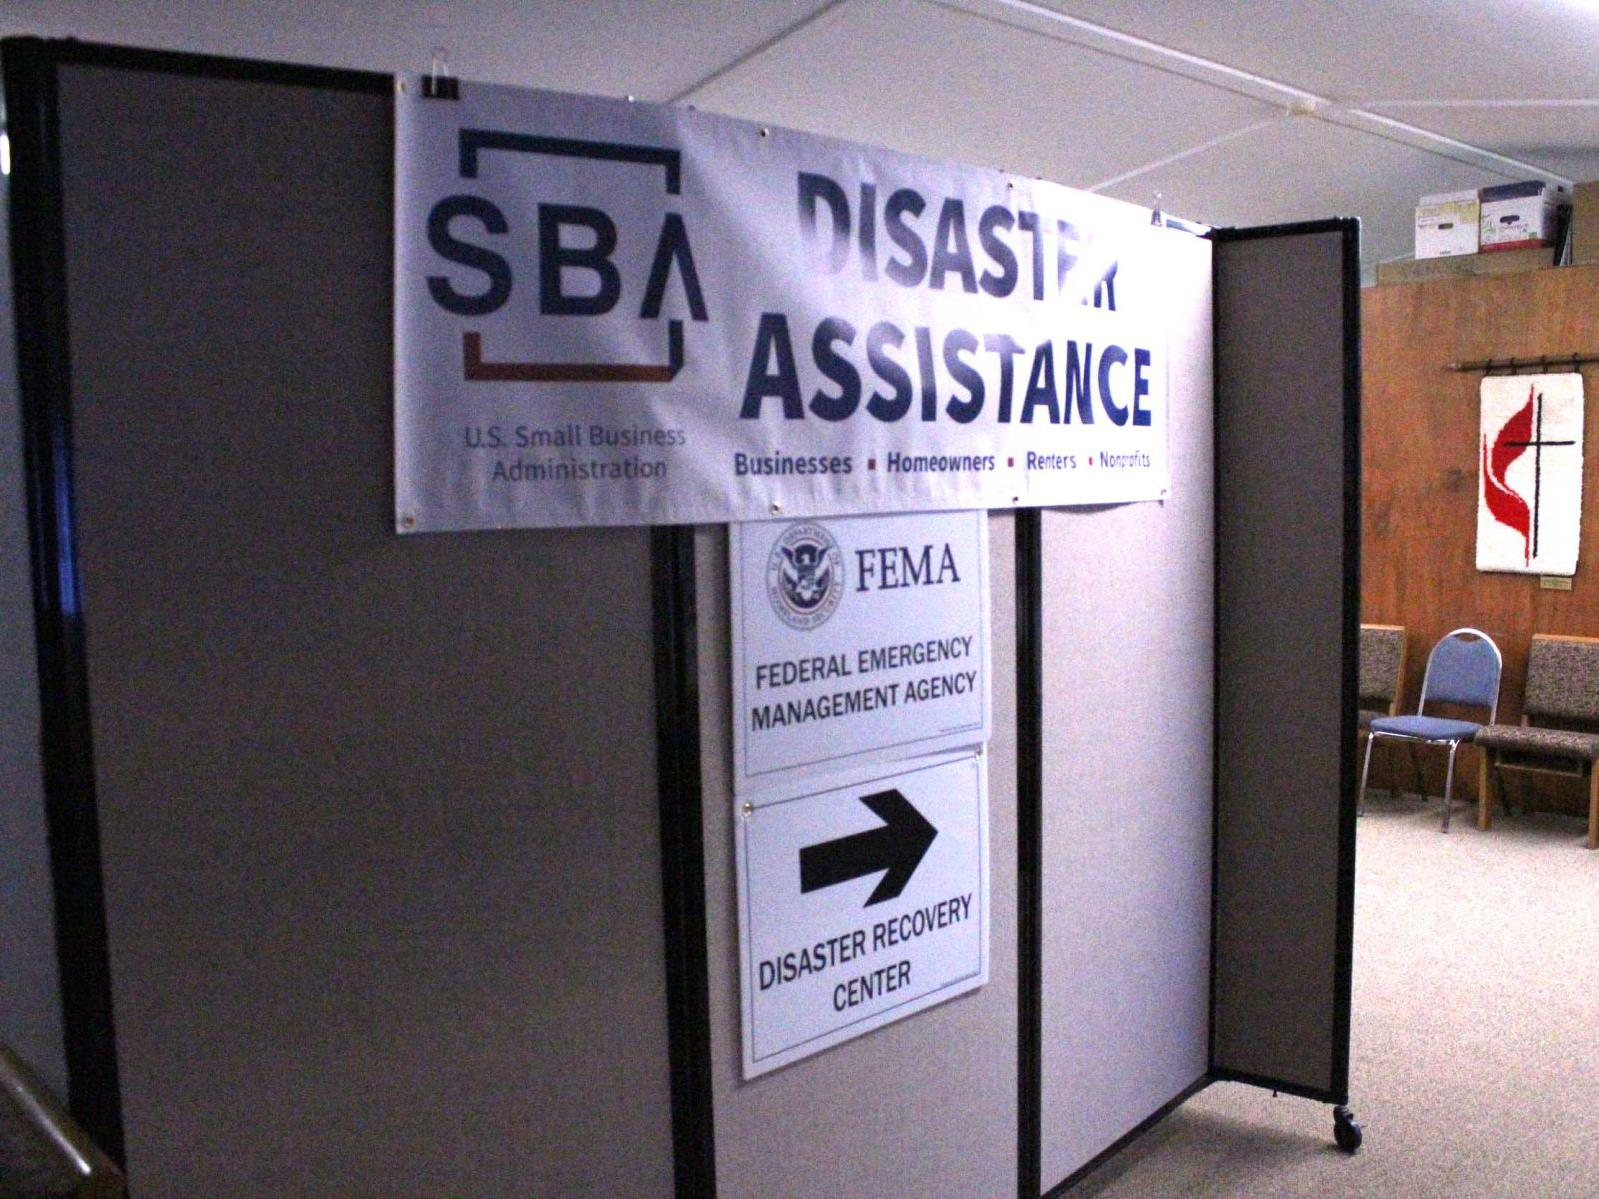 Disaster Recovery Center opens in Wasilla